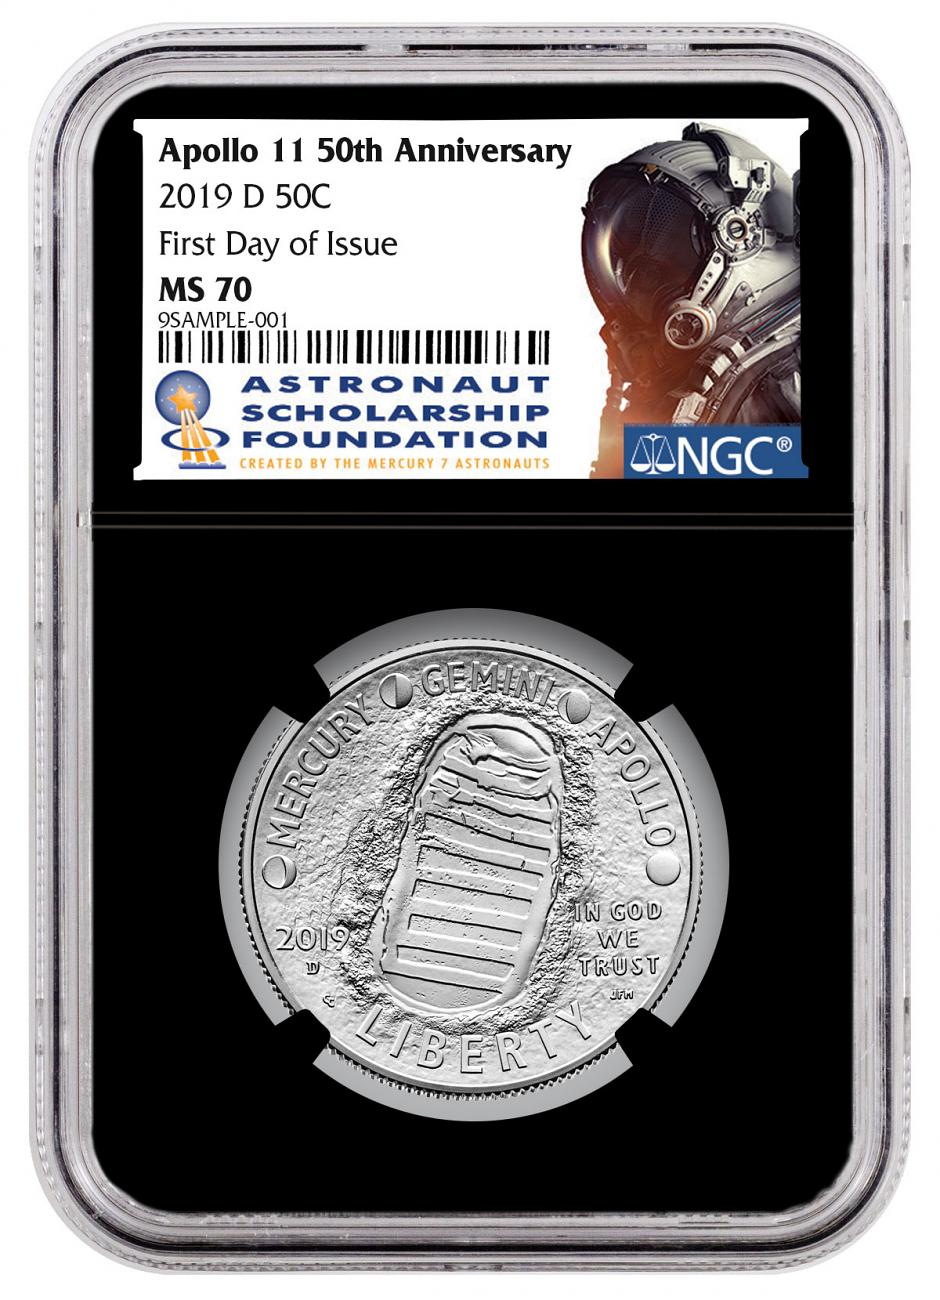 2019-D Apollo 11 50th Anniversary Commemorative Clad Half Dollar Coin NGC MS70 FDI Black Core Holder Astronaut Scholarship Foundation Label